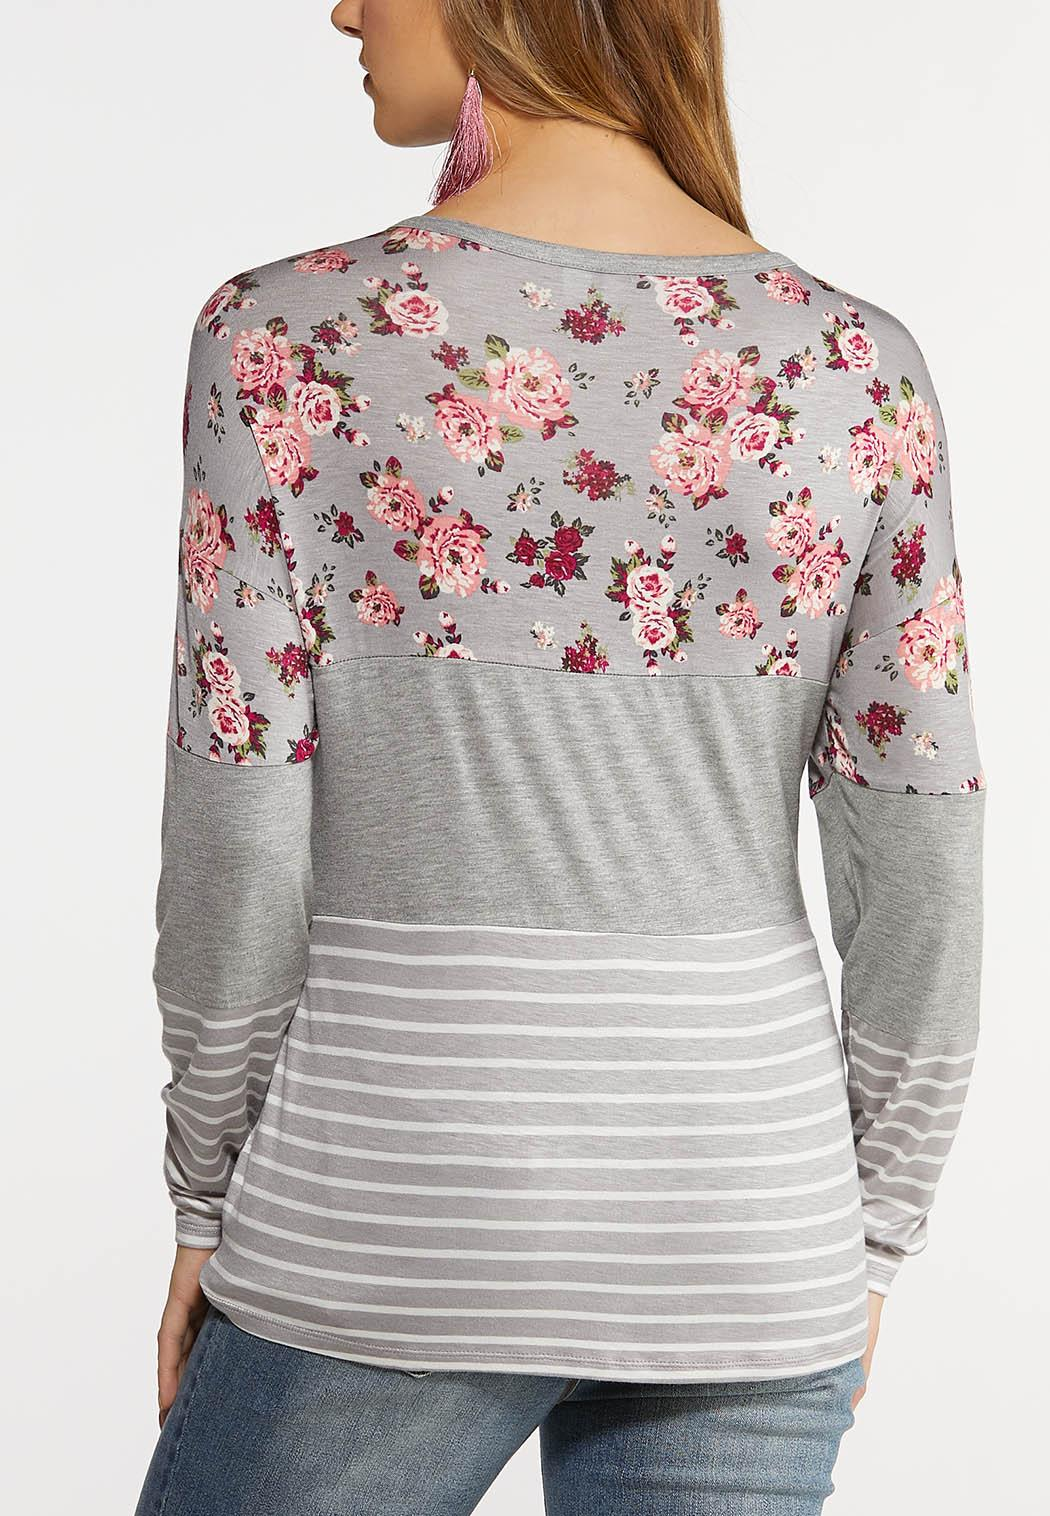 Plus Size Floral Colorblock Baseball Tee (Item #44139960)